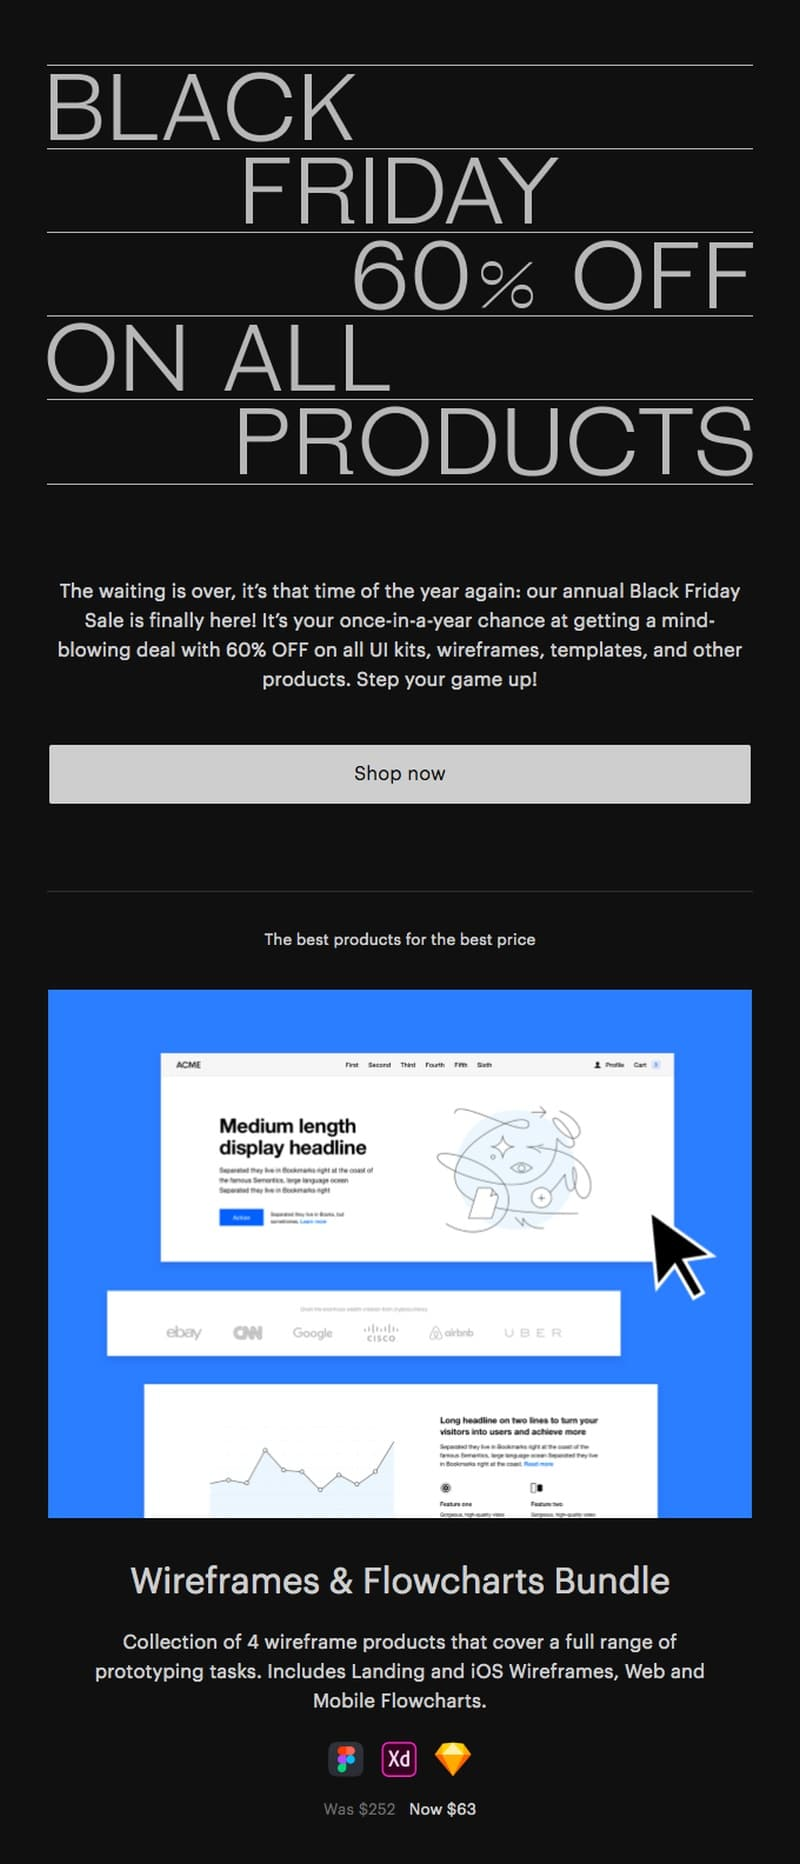 Great Simple Studio email showing an example of a Black Friday message with the most important details in the headline